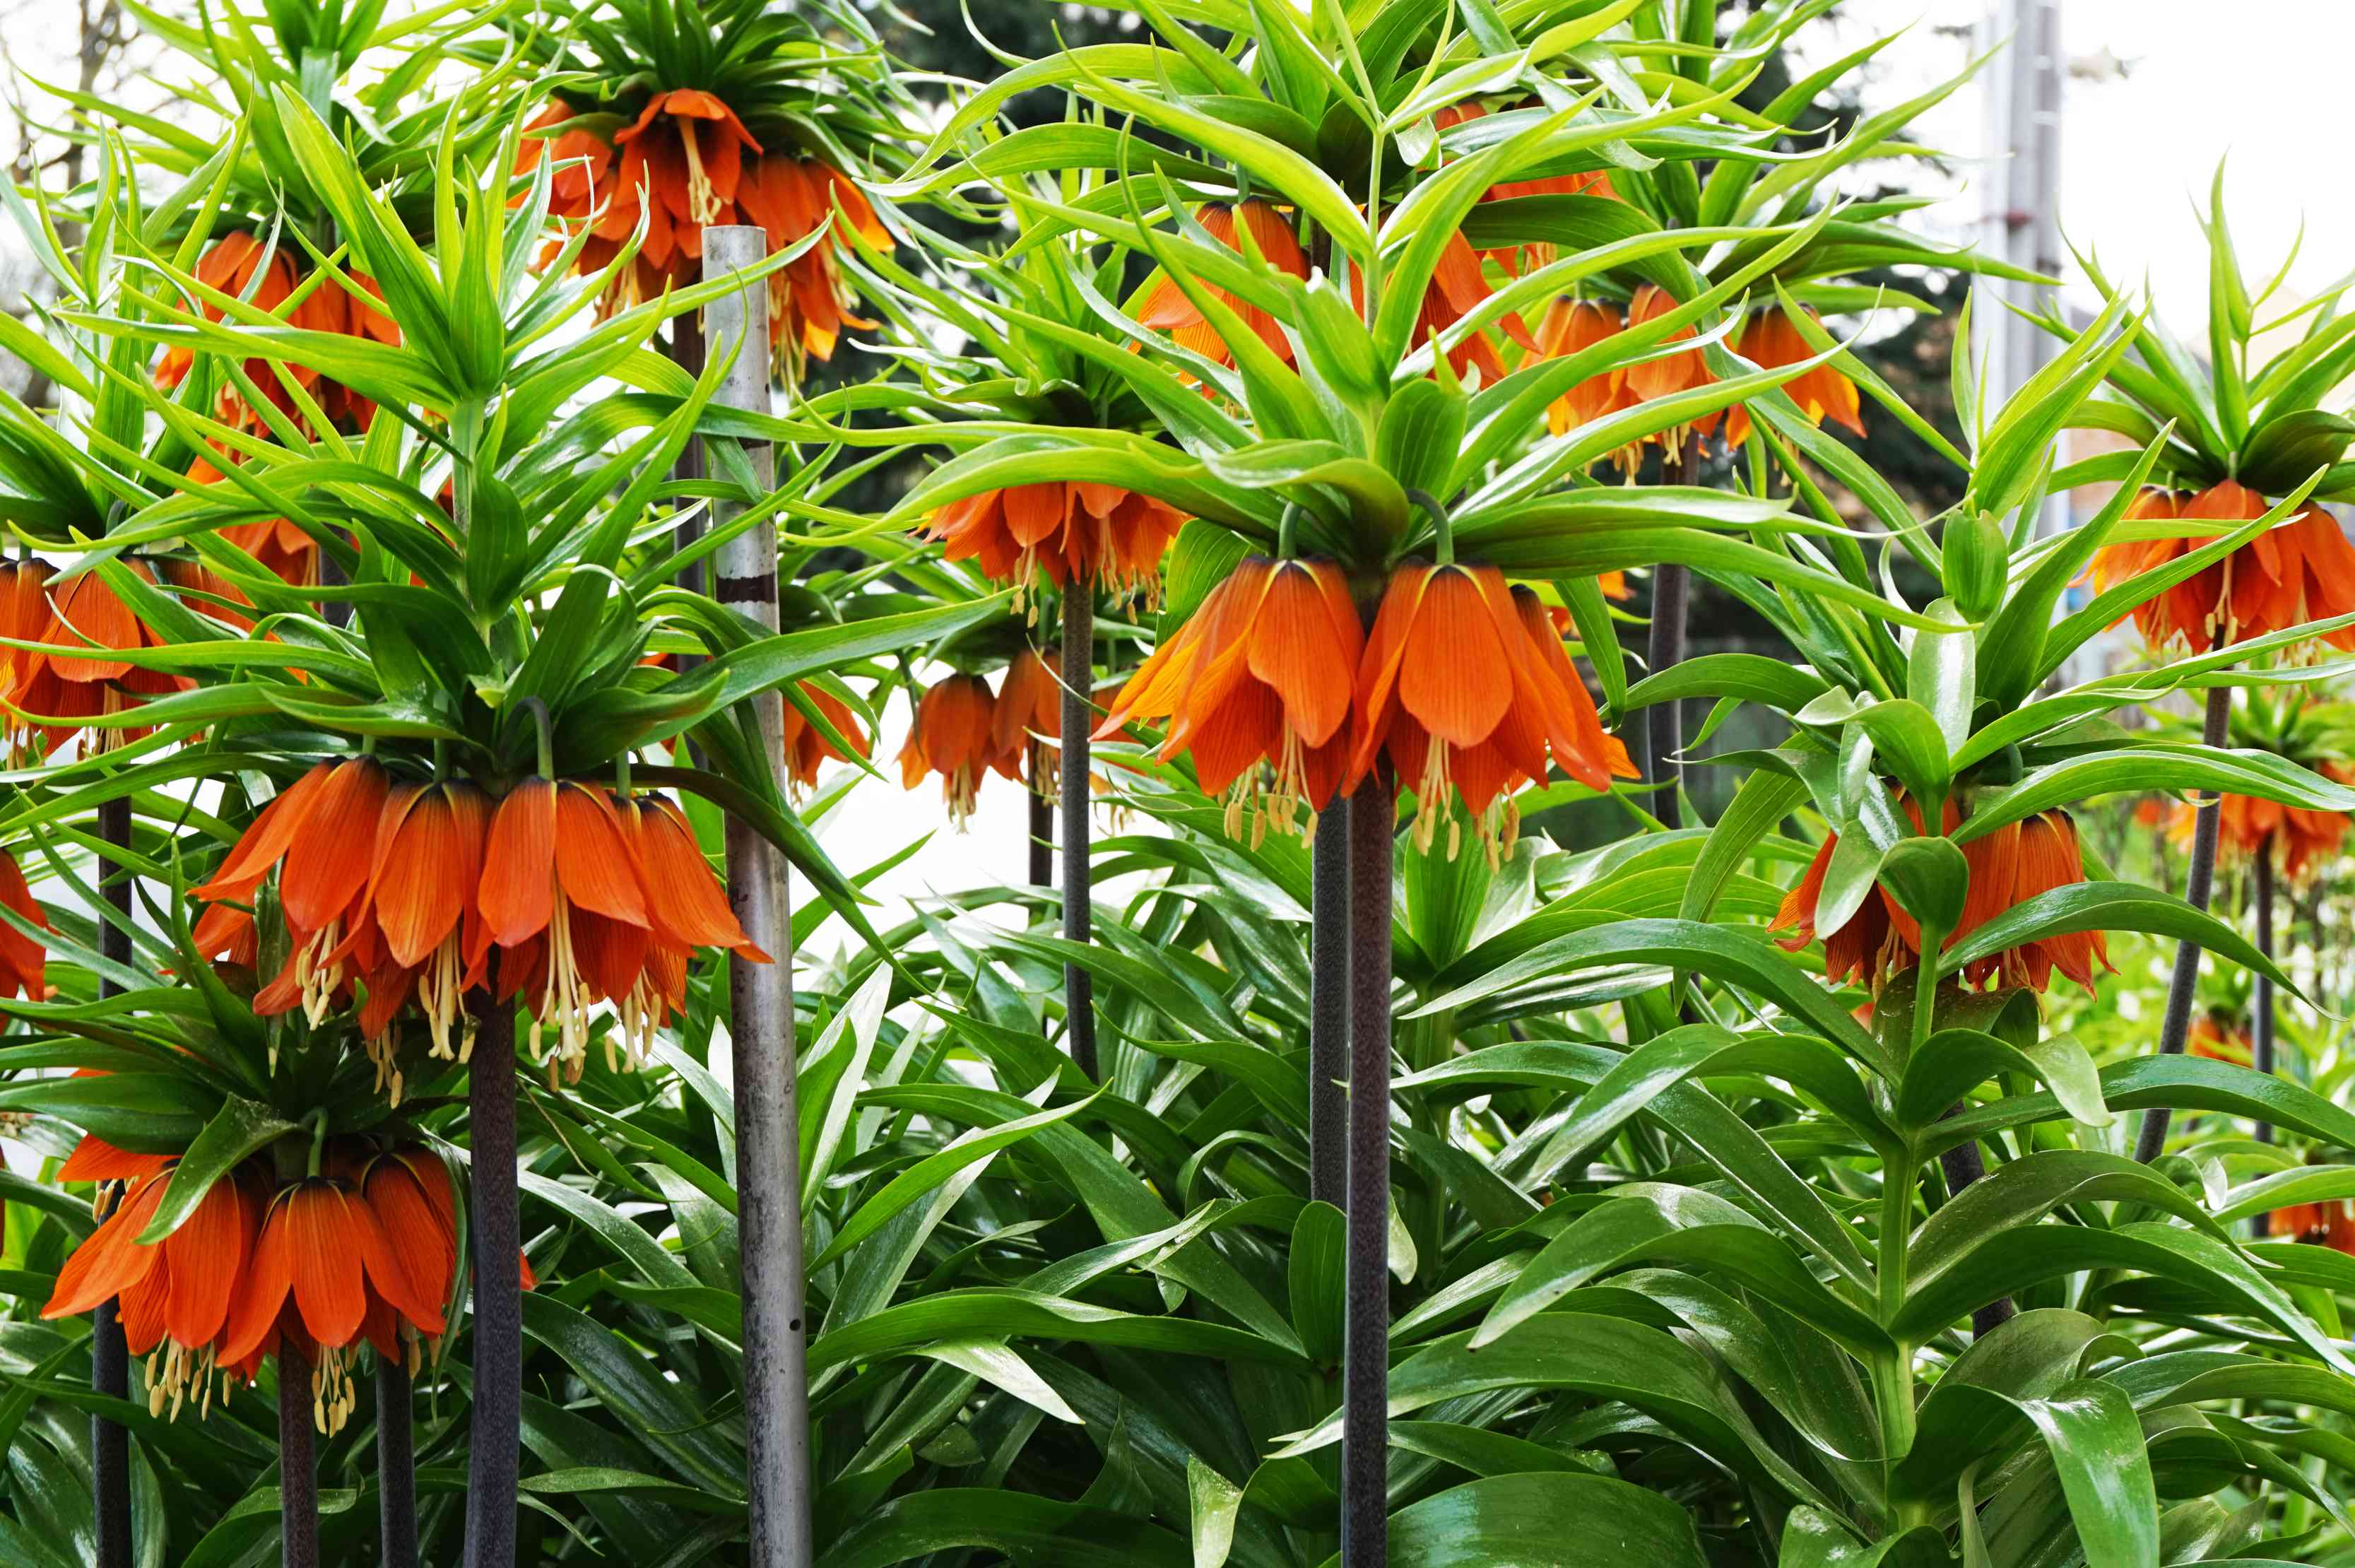 Fritillaria imperialis plants with red, downward-facing flowers